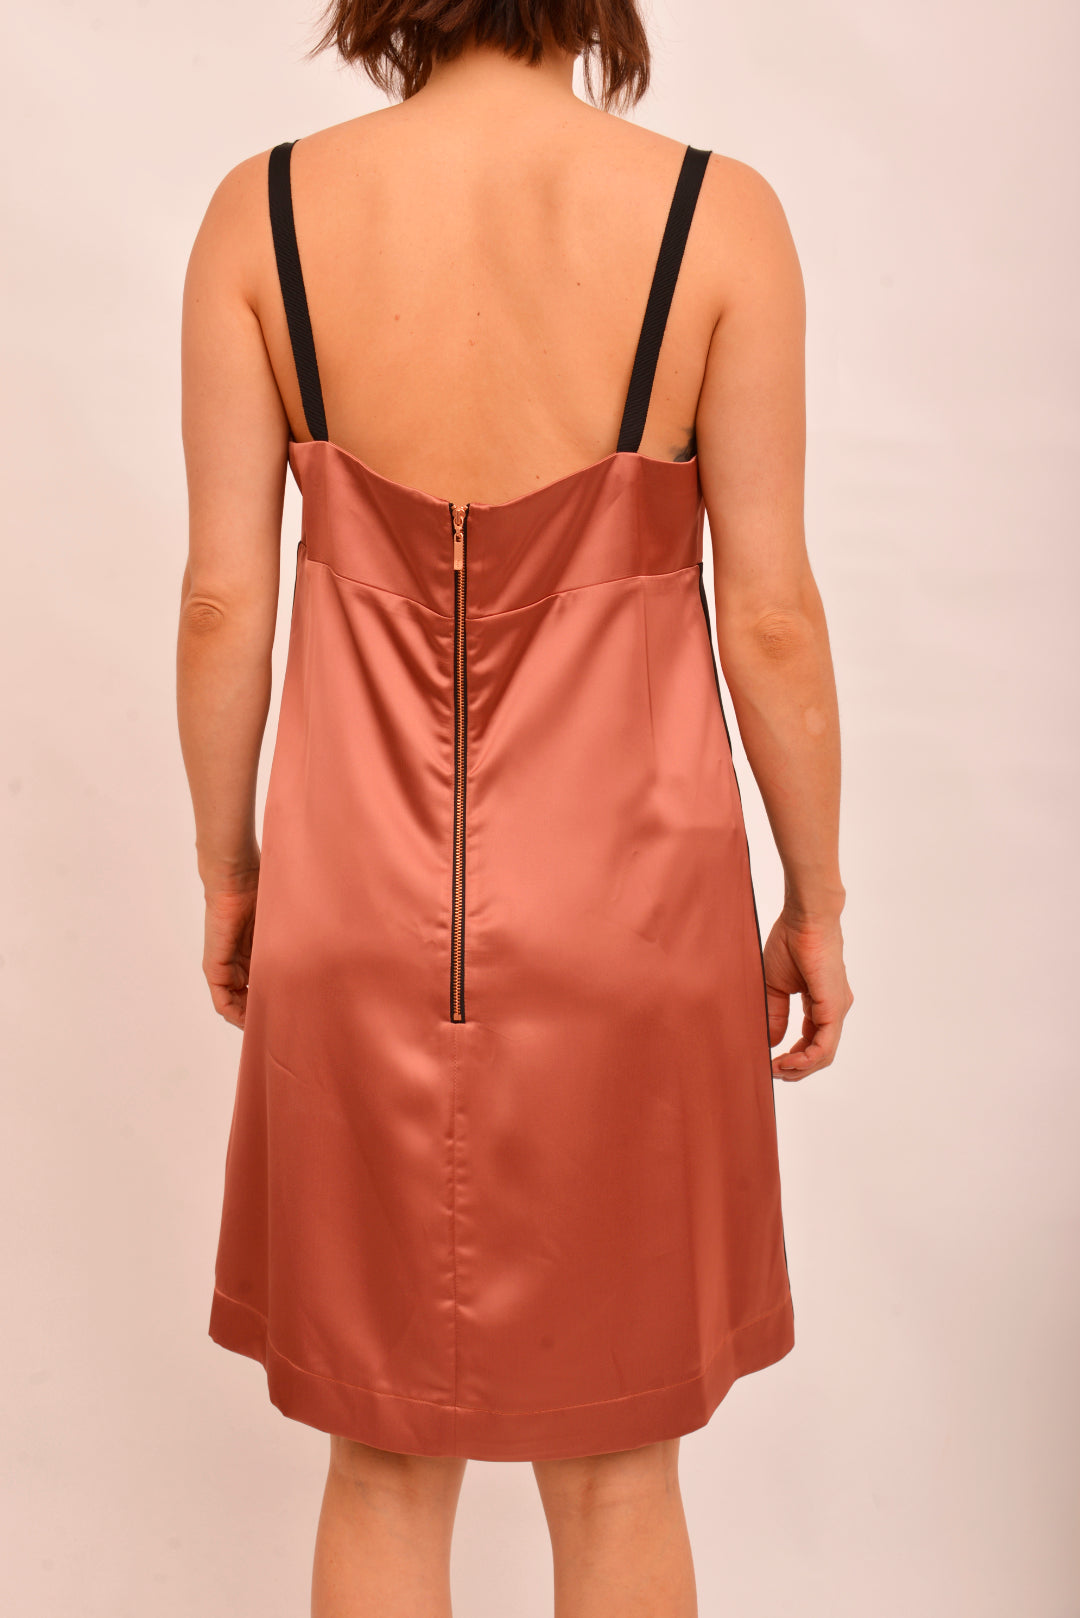 Cue NWT Slip Dress (14) - Mercado32